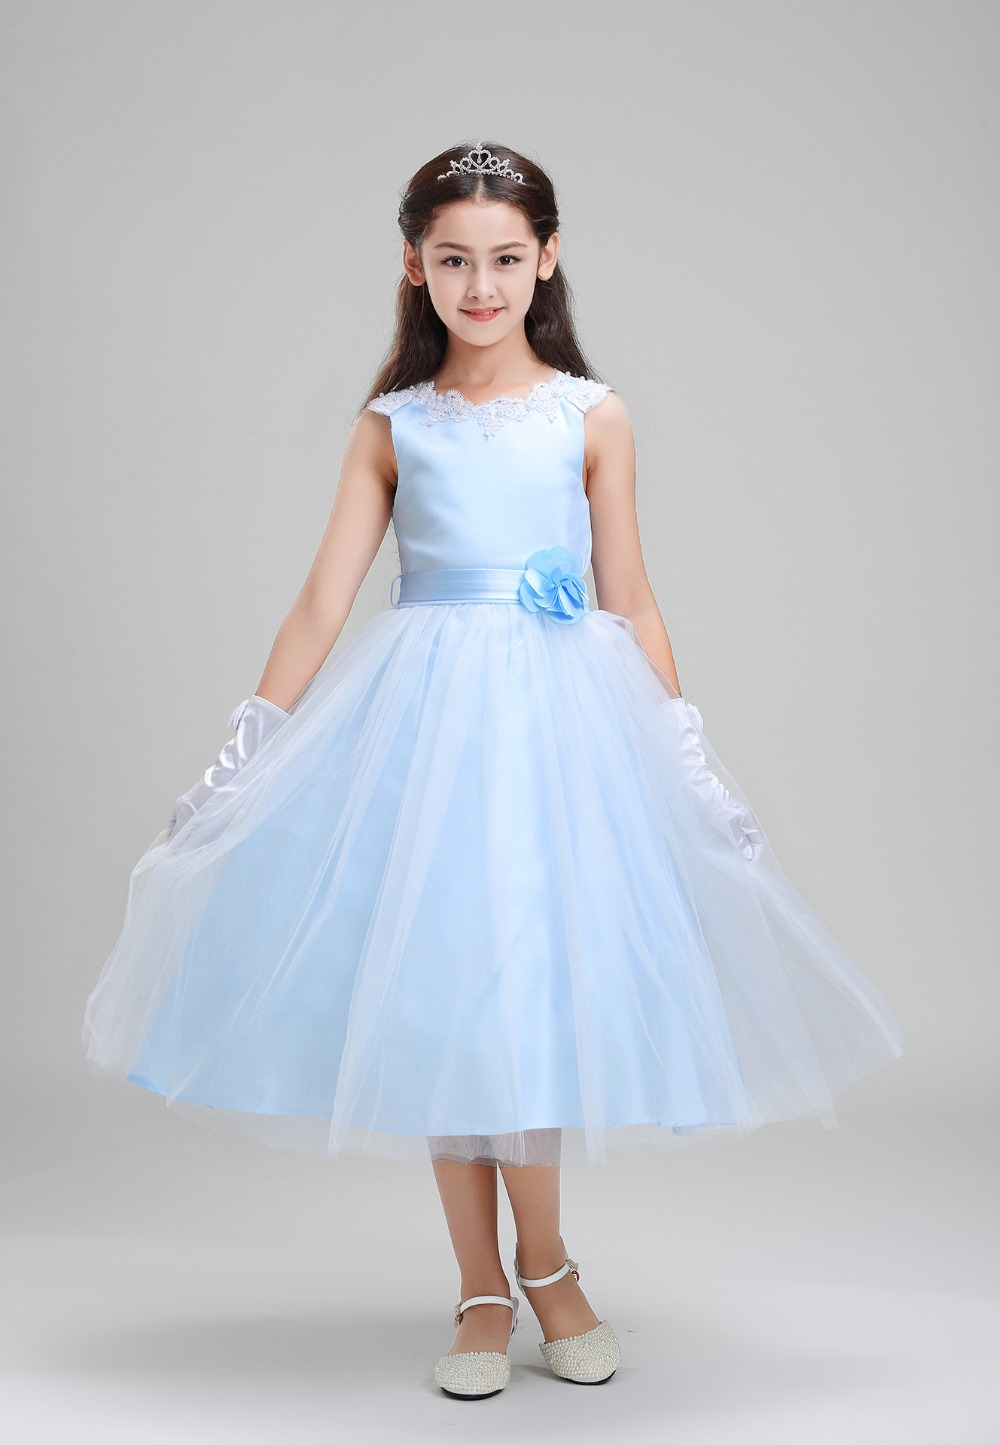 New Luxury Long Elegant Appliques Blue Lace Flower Girls Wedding Dresses Kids Baby Holy Communion Dress Teenagers Pageant Gowns elegant flower lace lacut cut wedding invitations set blank ppaer printing invitation cards kit casamento convite pocket